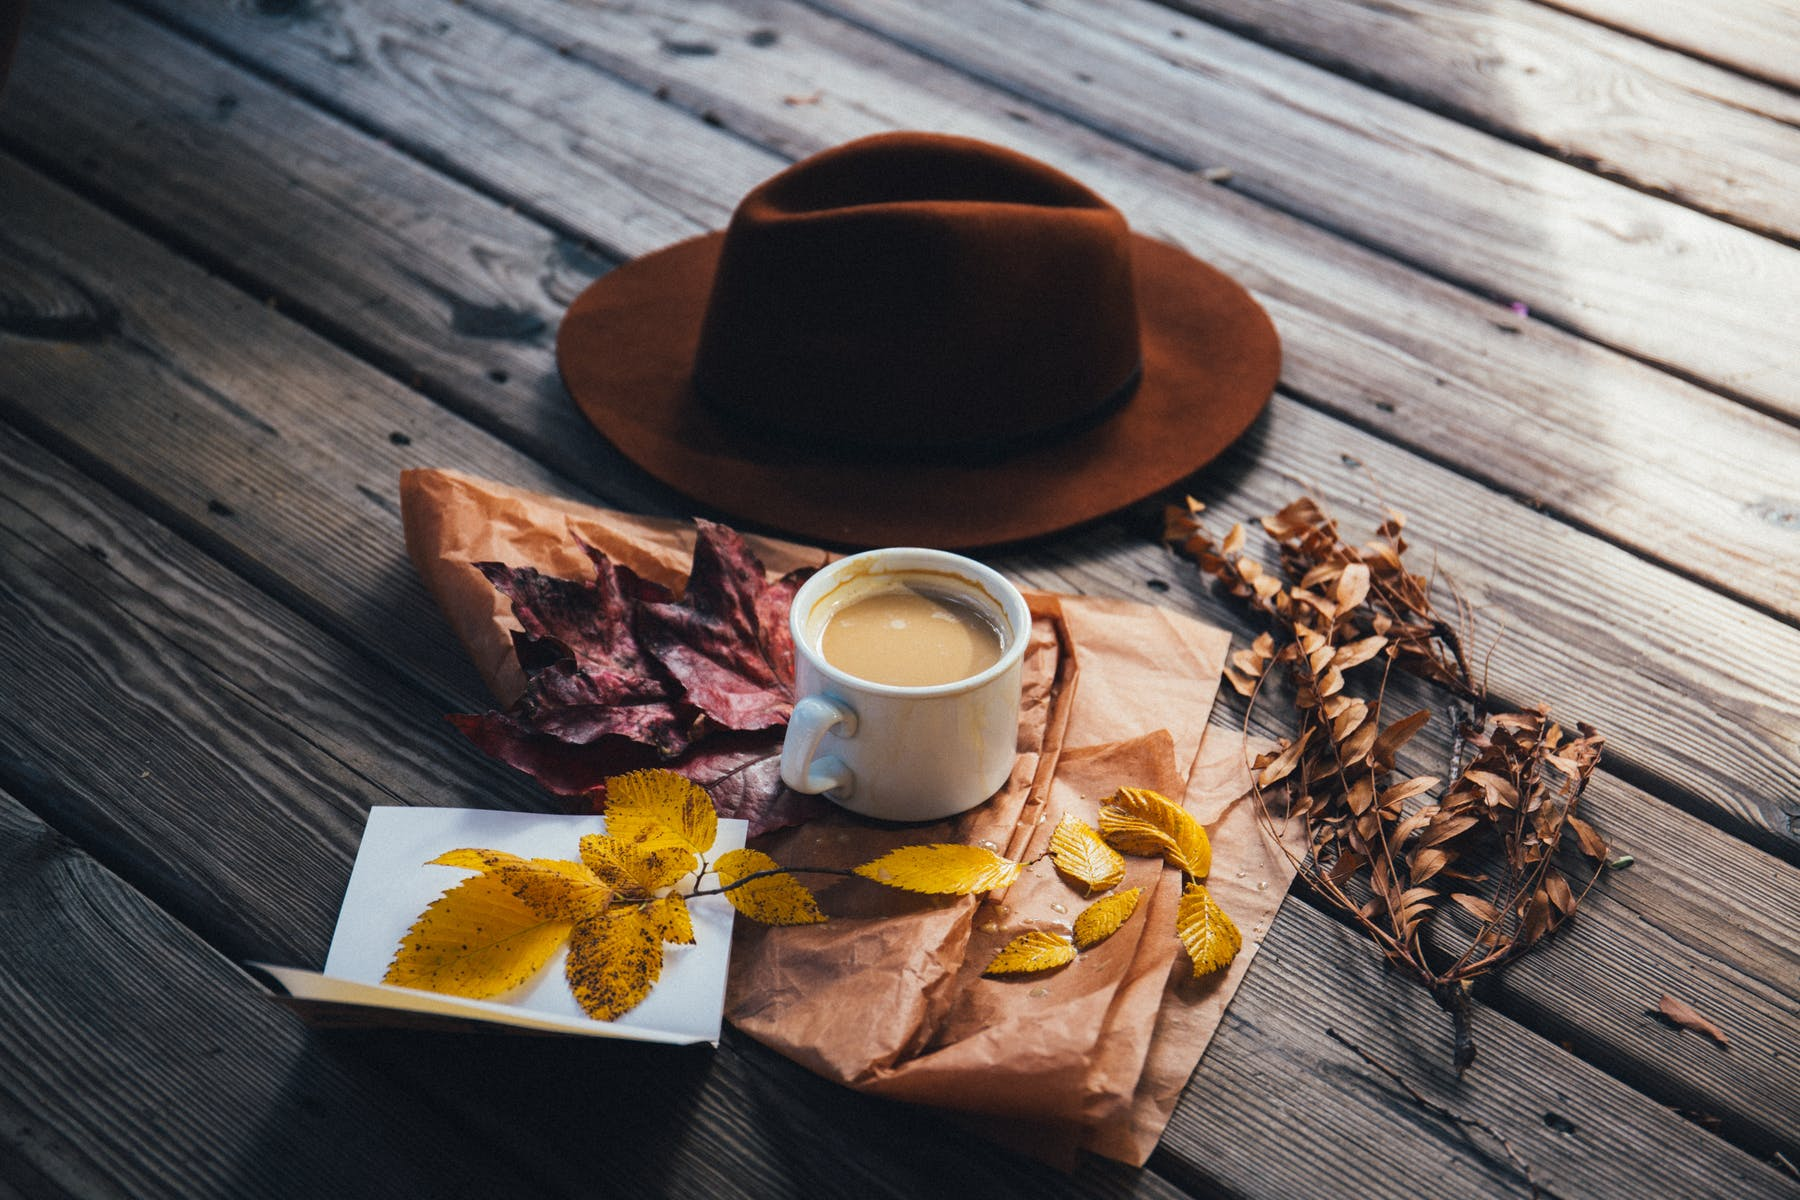 a close up of a hat and a cup of coffee